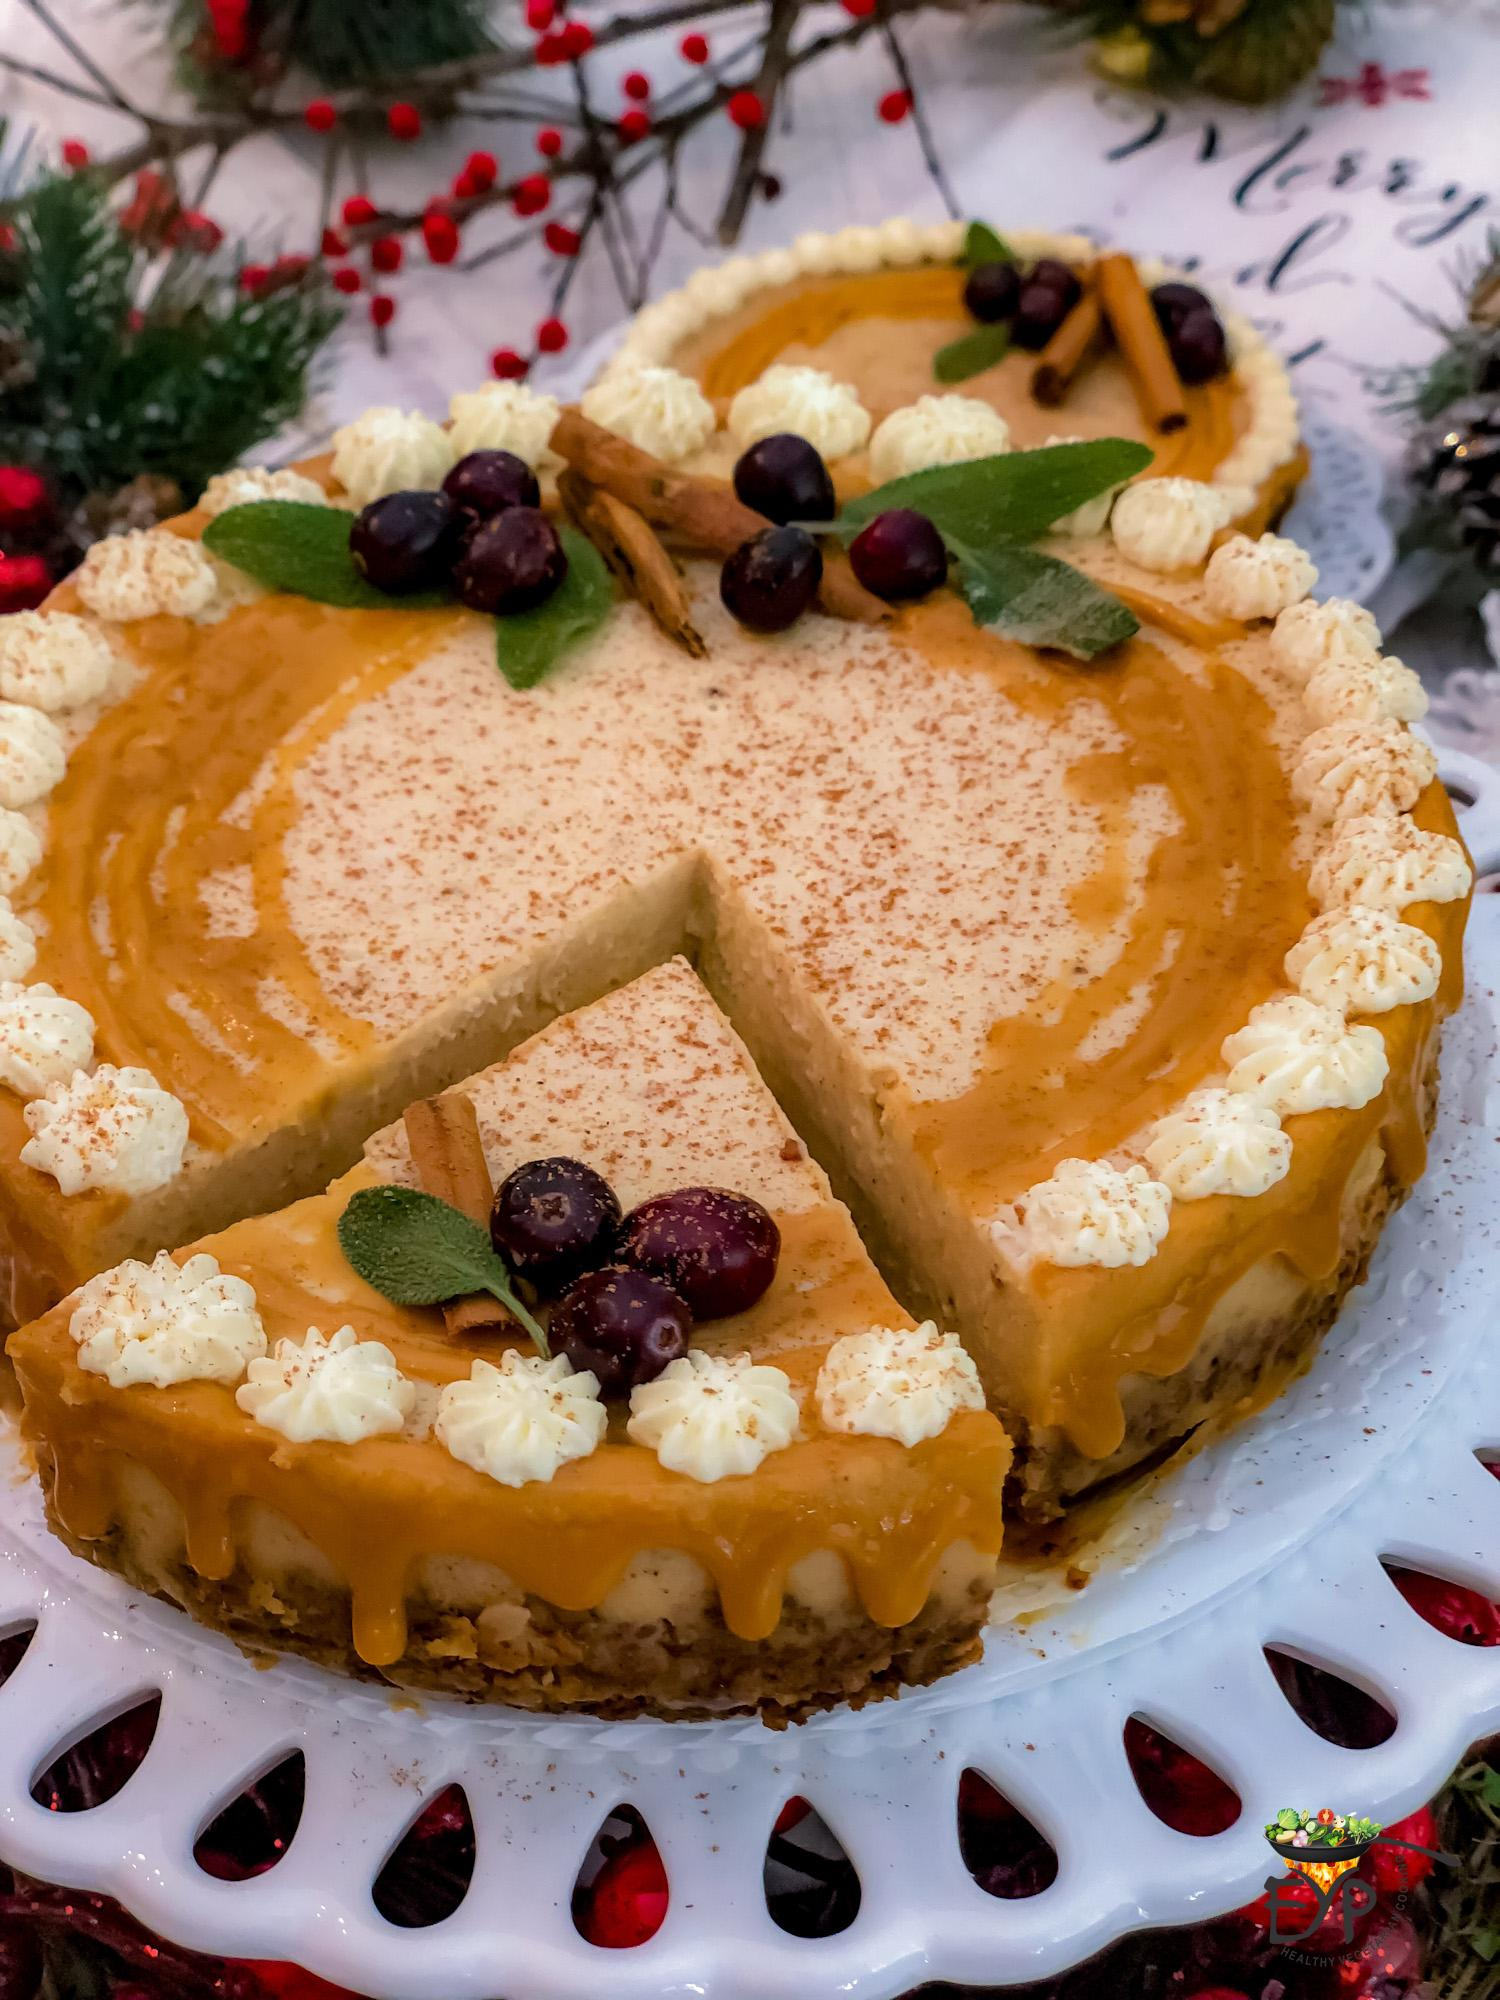 Instant Pot recipe for egg-less Pumpkin Spice Cheesecake made with Greek yogurt instead of cream cheese and enhanced with butterscotch ganache to bring out the maximum Oomph….! of this holiday season dessert.